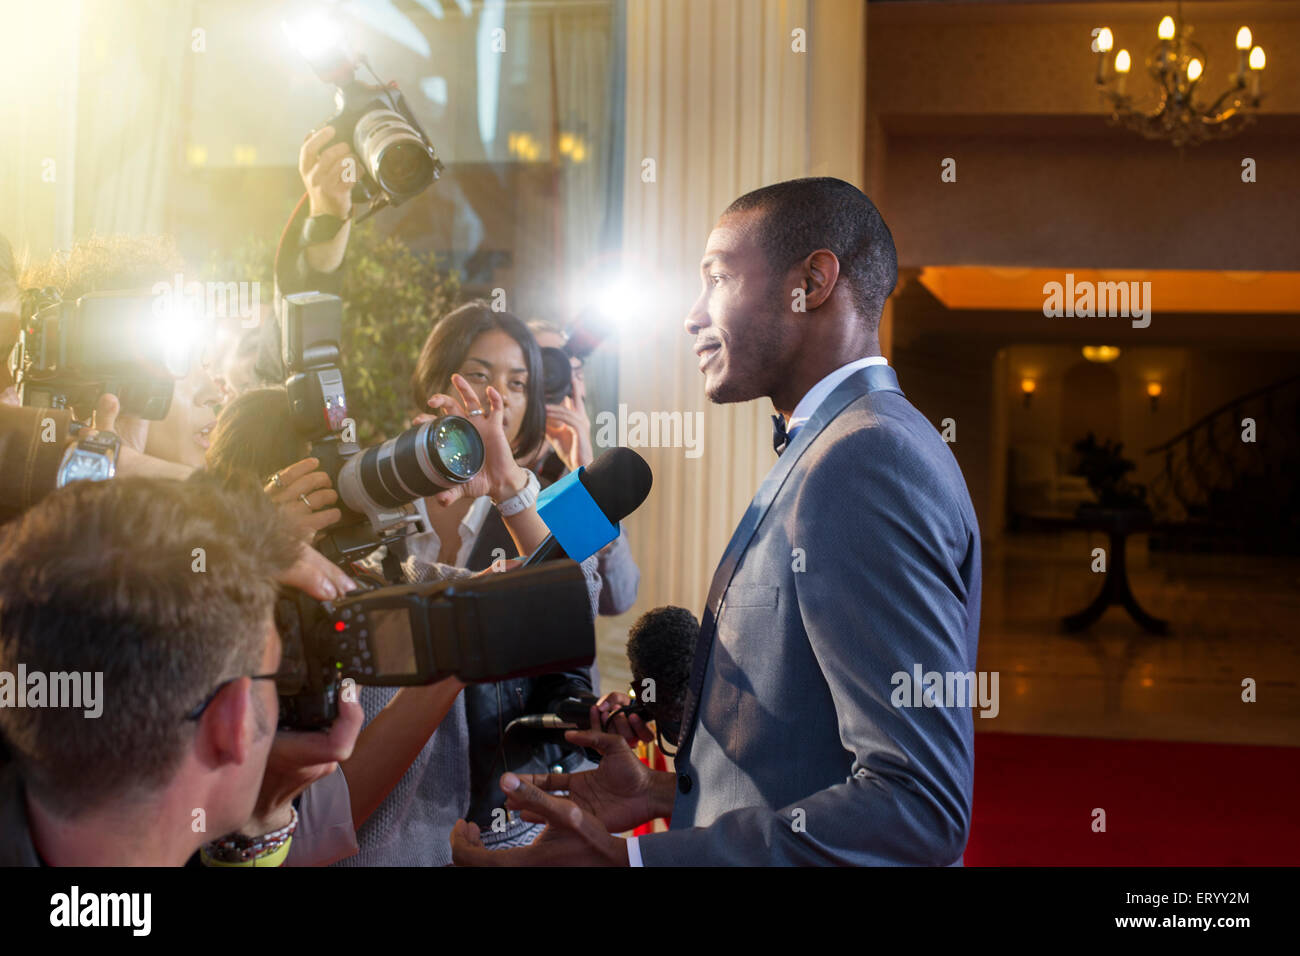 Celebrity being interviewed and photographed by paparazzi at red carpet event Stock Photo